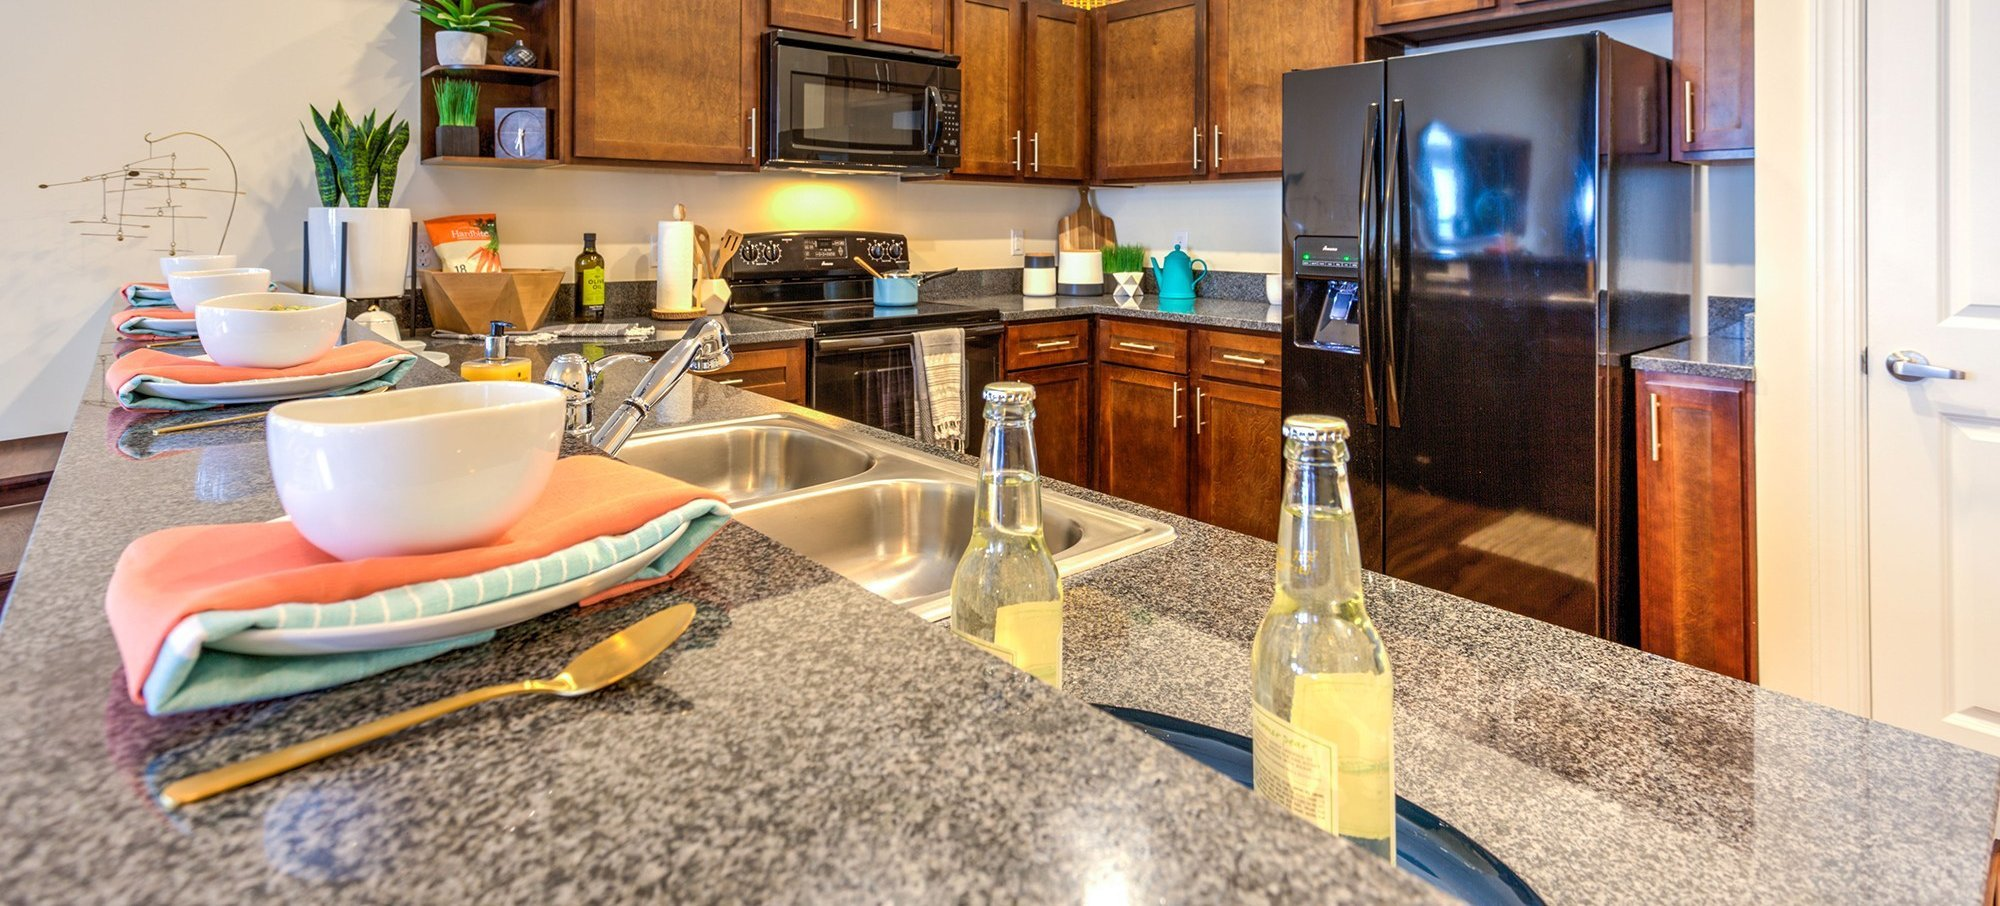 Best Lake Lofts At Deerwood Apartments In Jacksonville Fl With Pictures